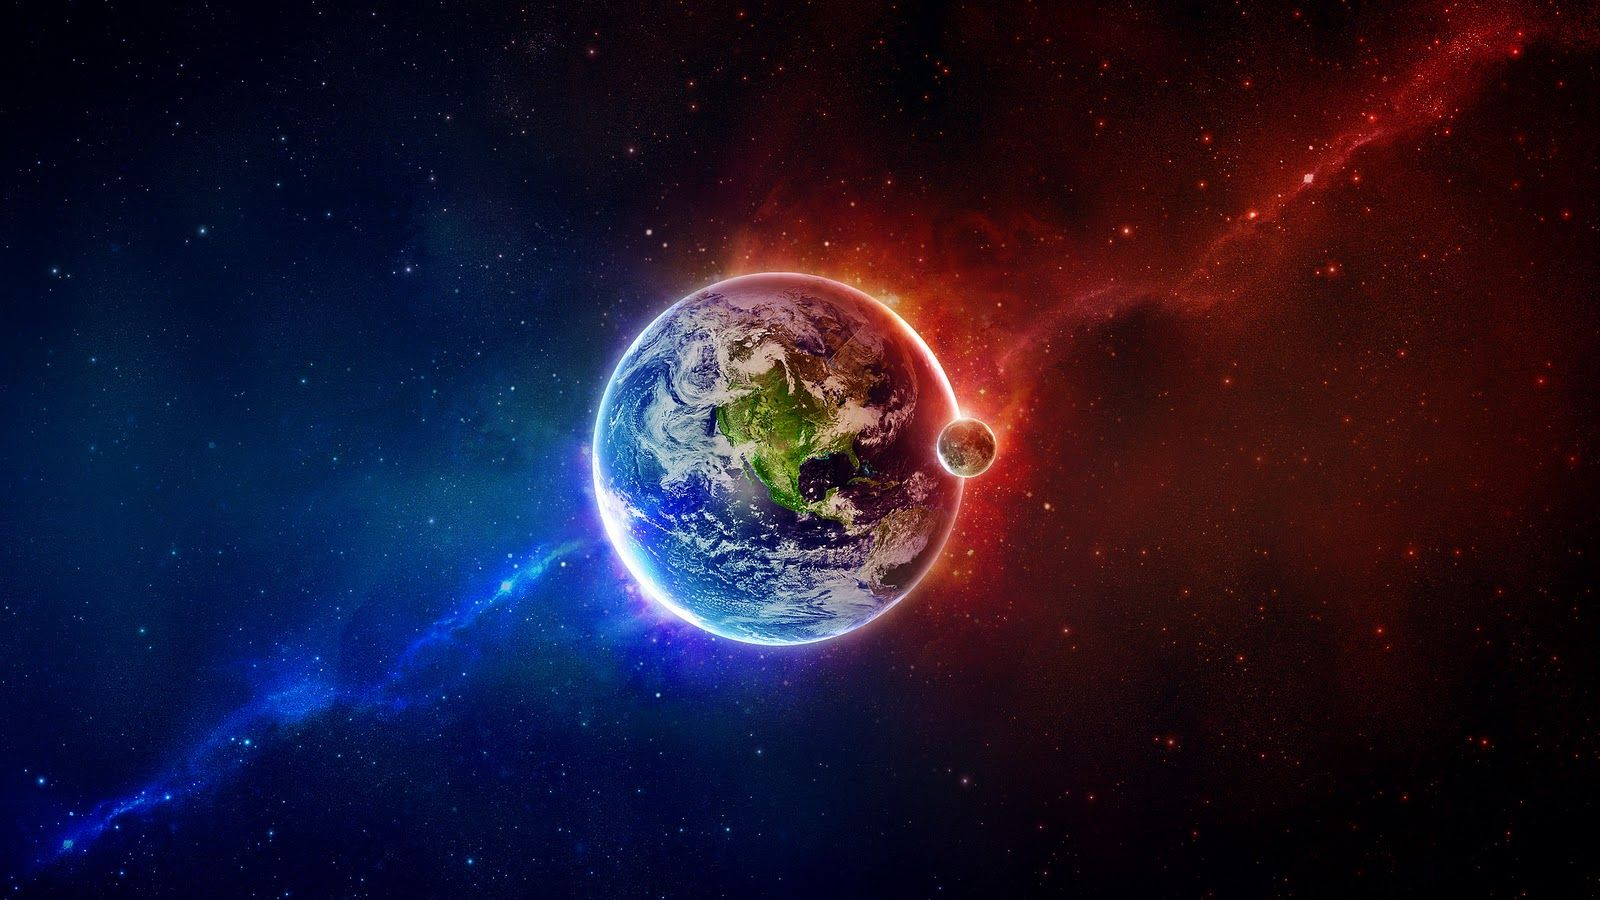 Pics photos hd wallpapers epic desktop s - Feed Pictures Abstract Art Earth Space Blue Red Hd Epic Wallpaper With